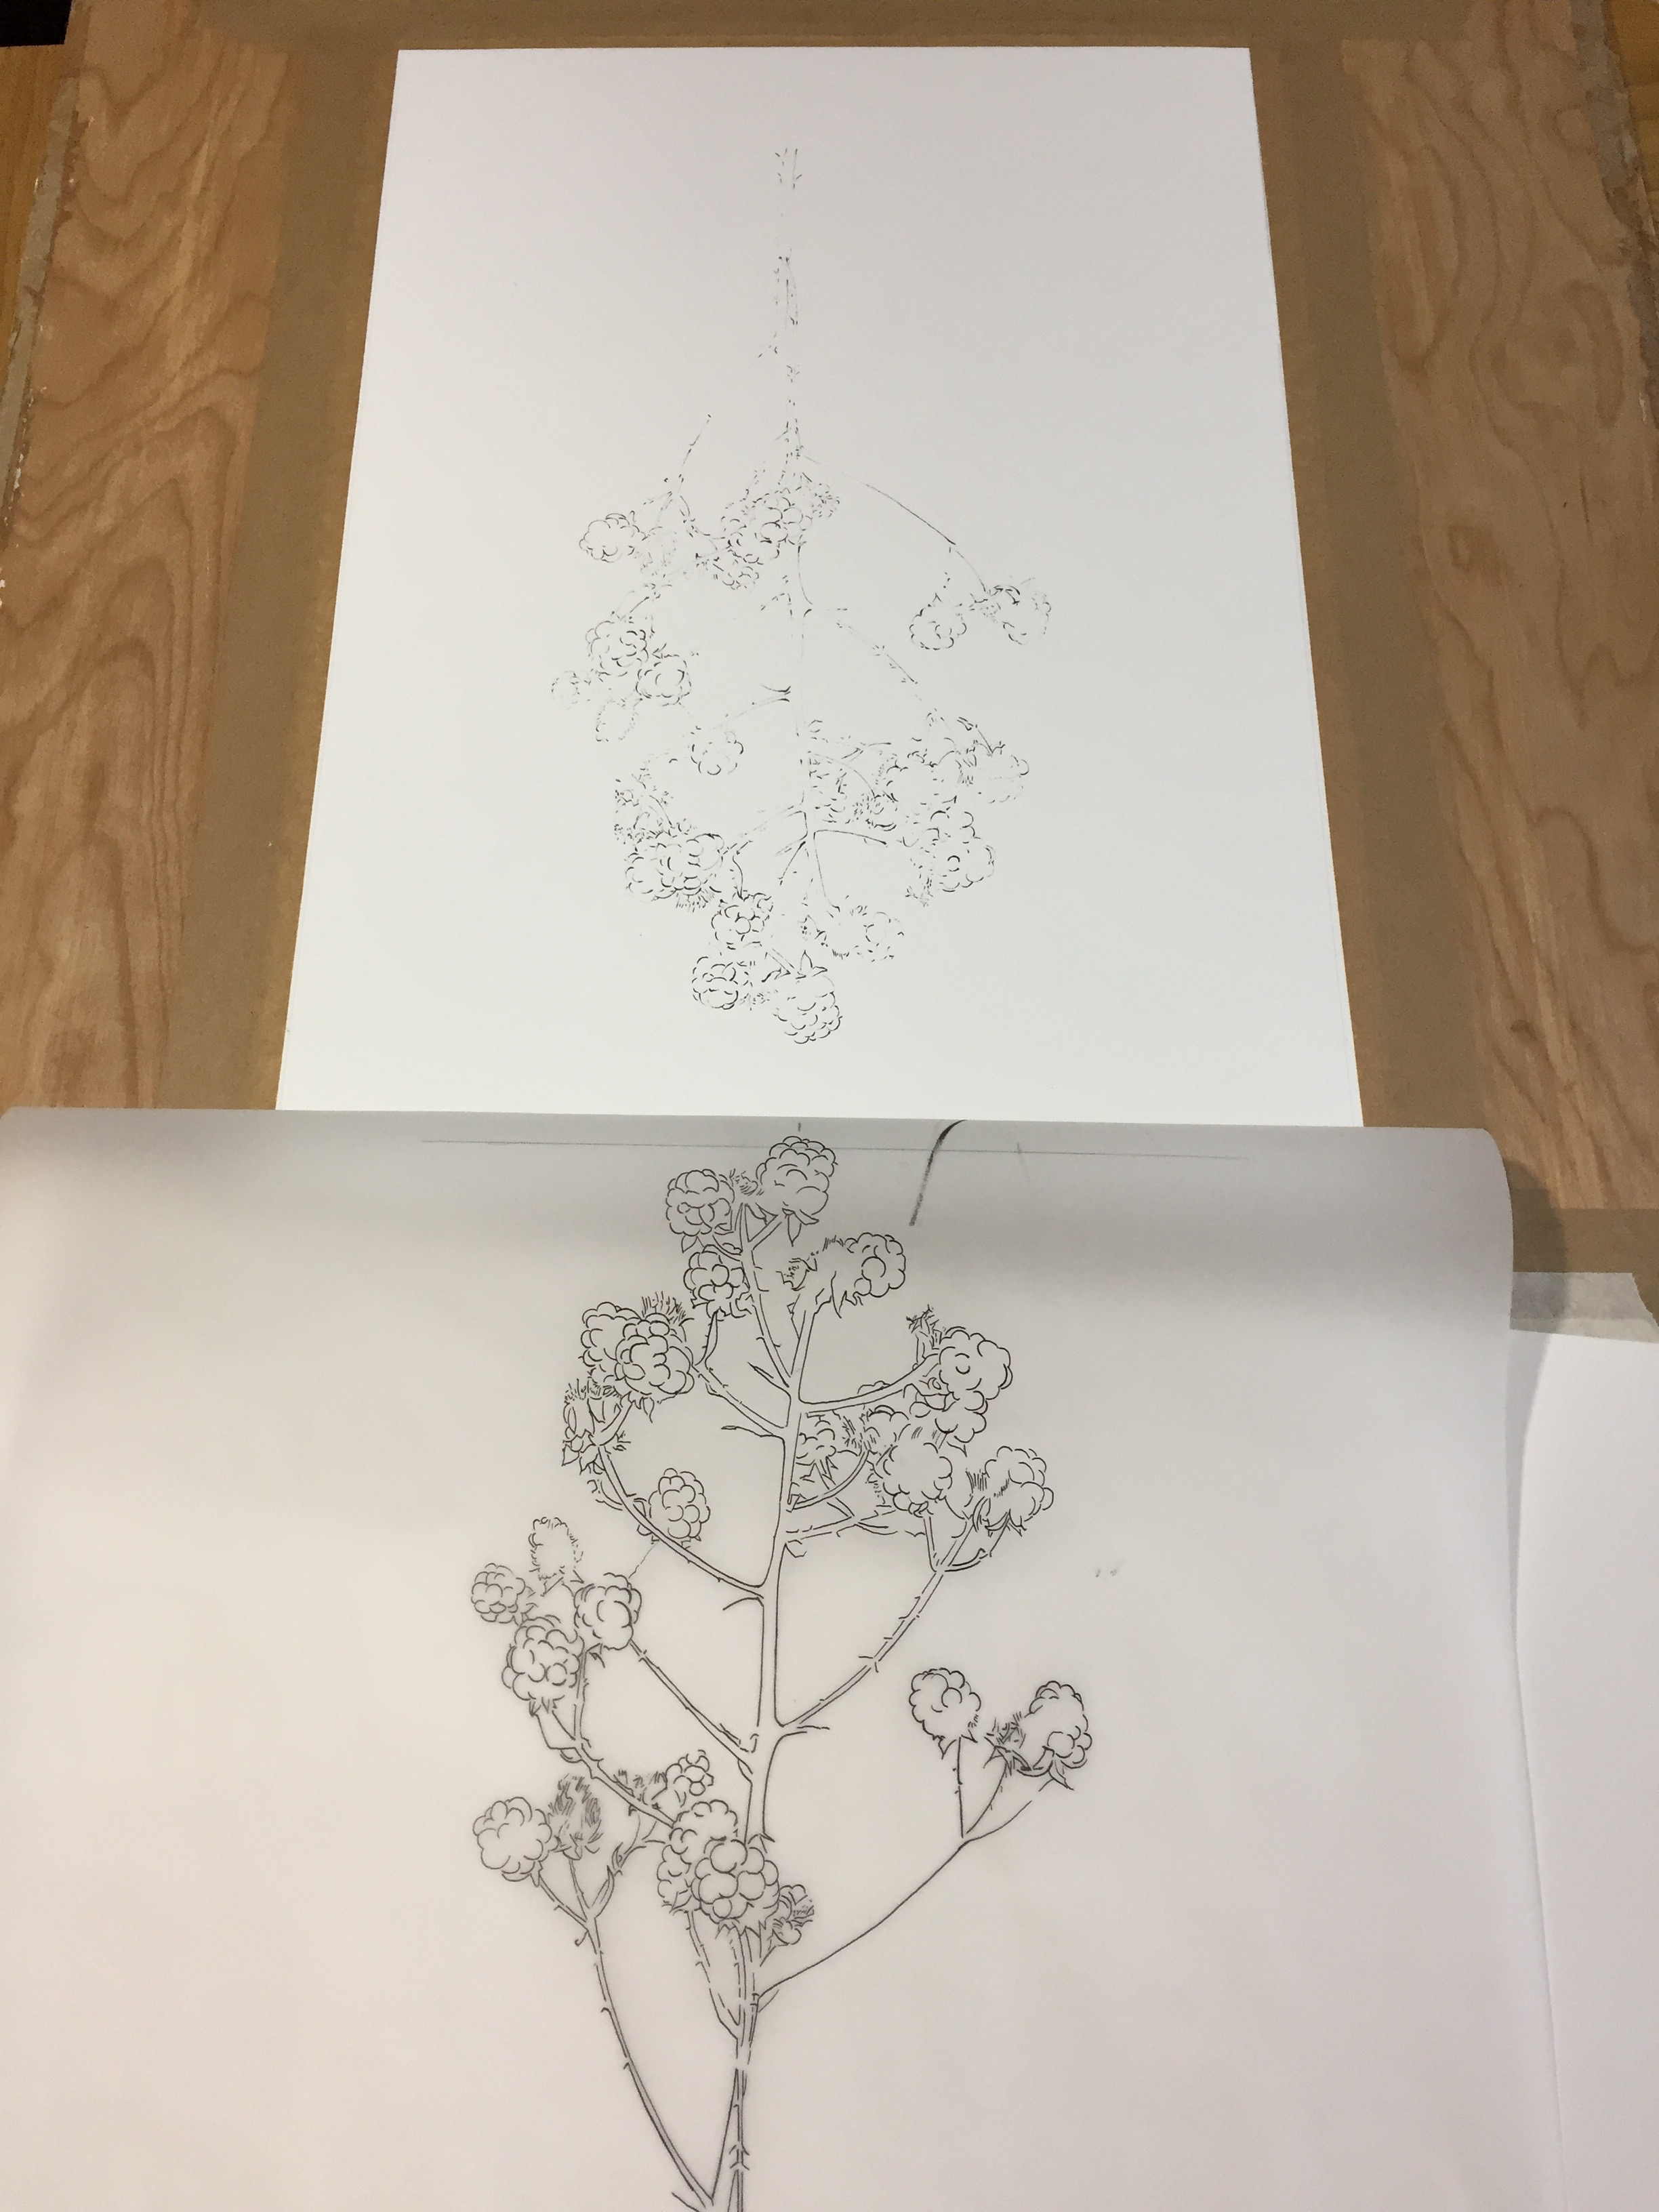 Printing with the blotted line technique